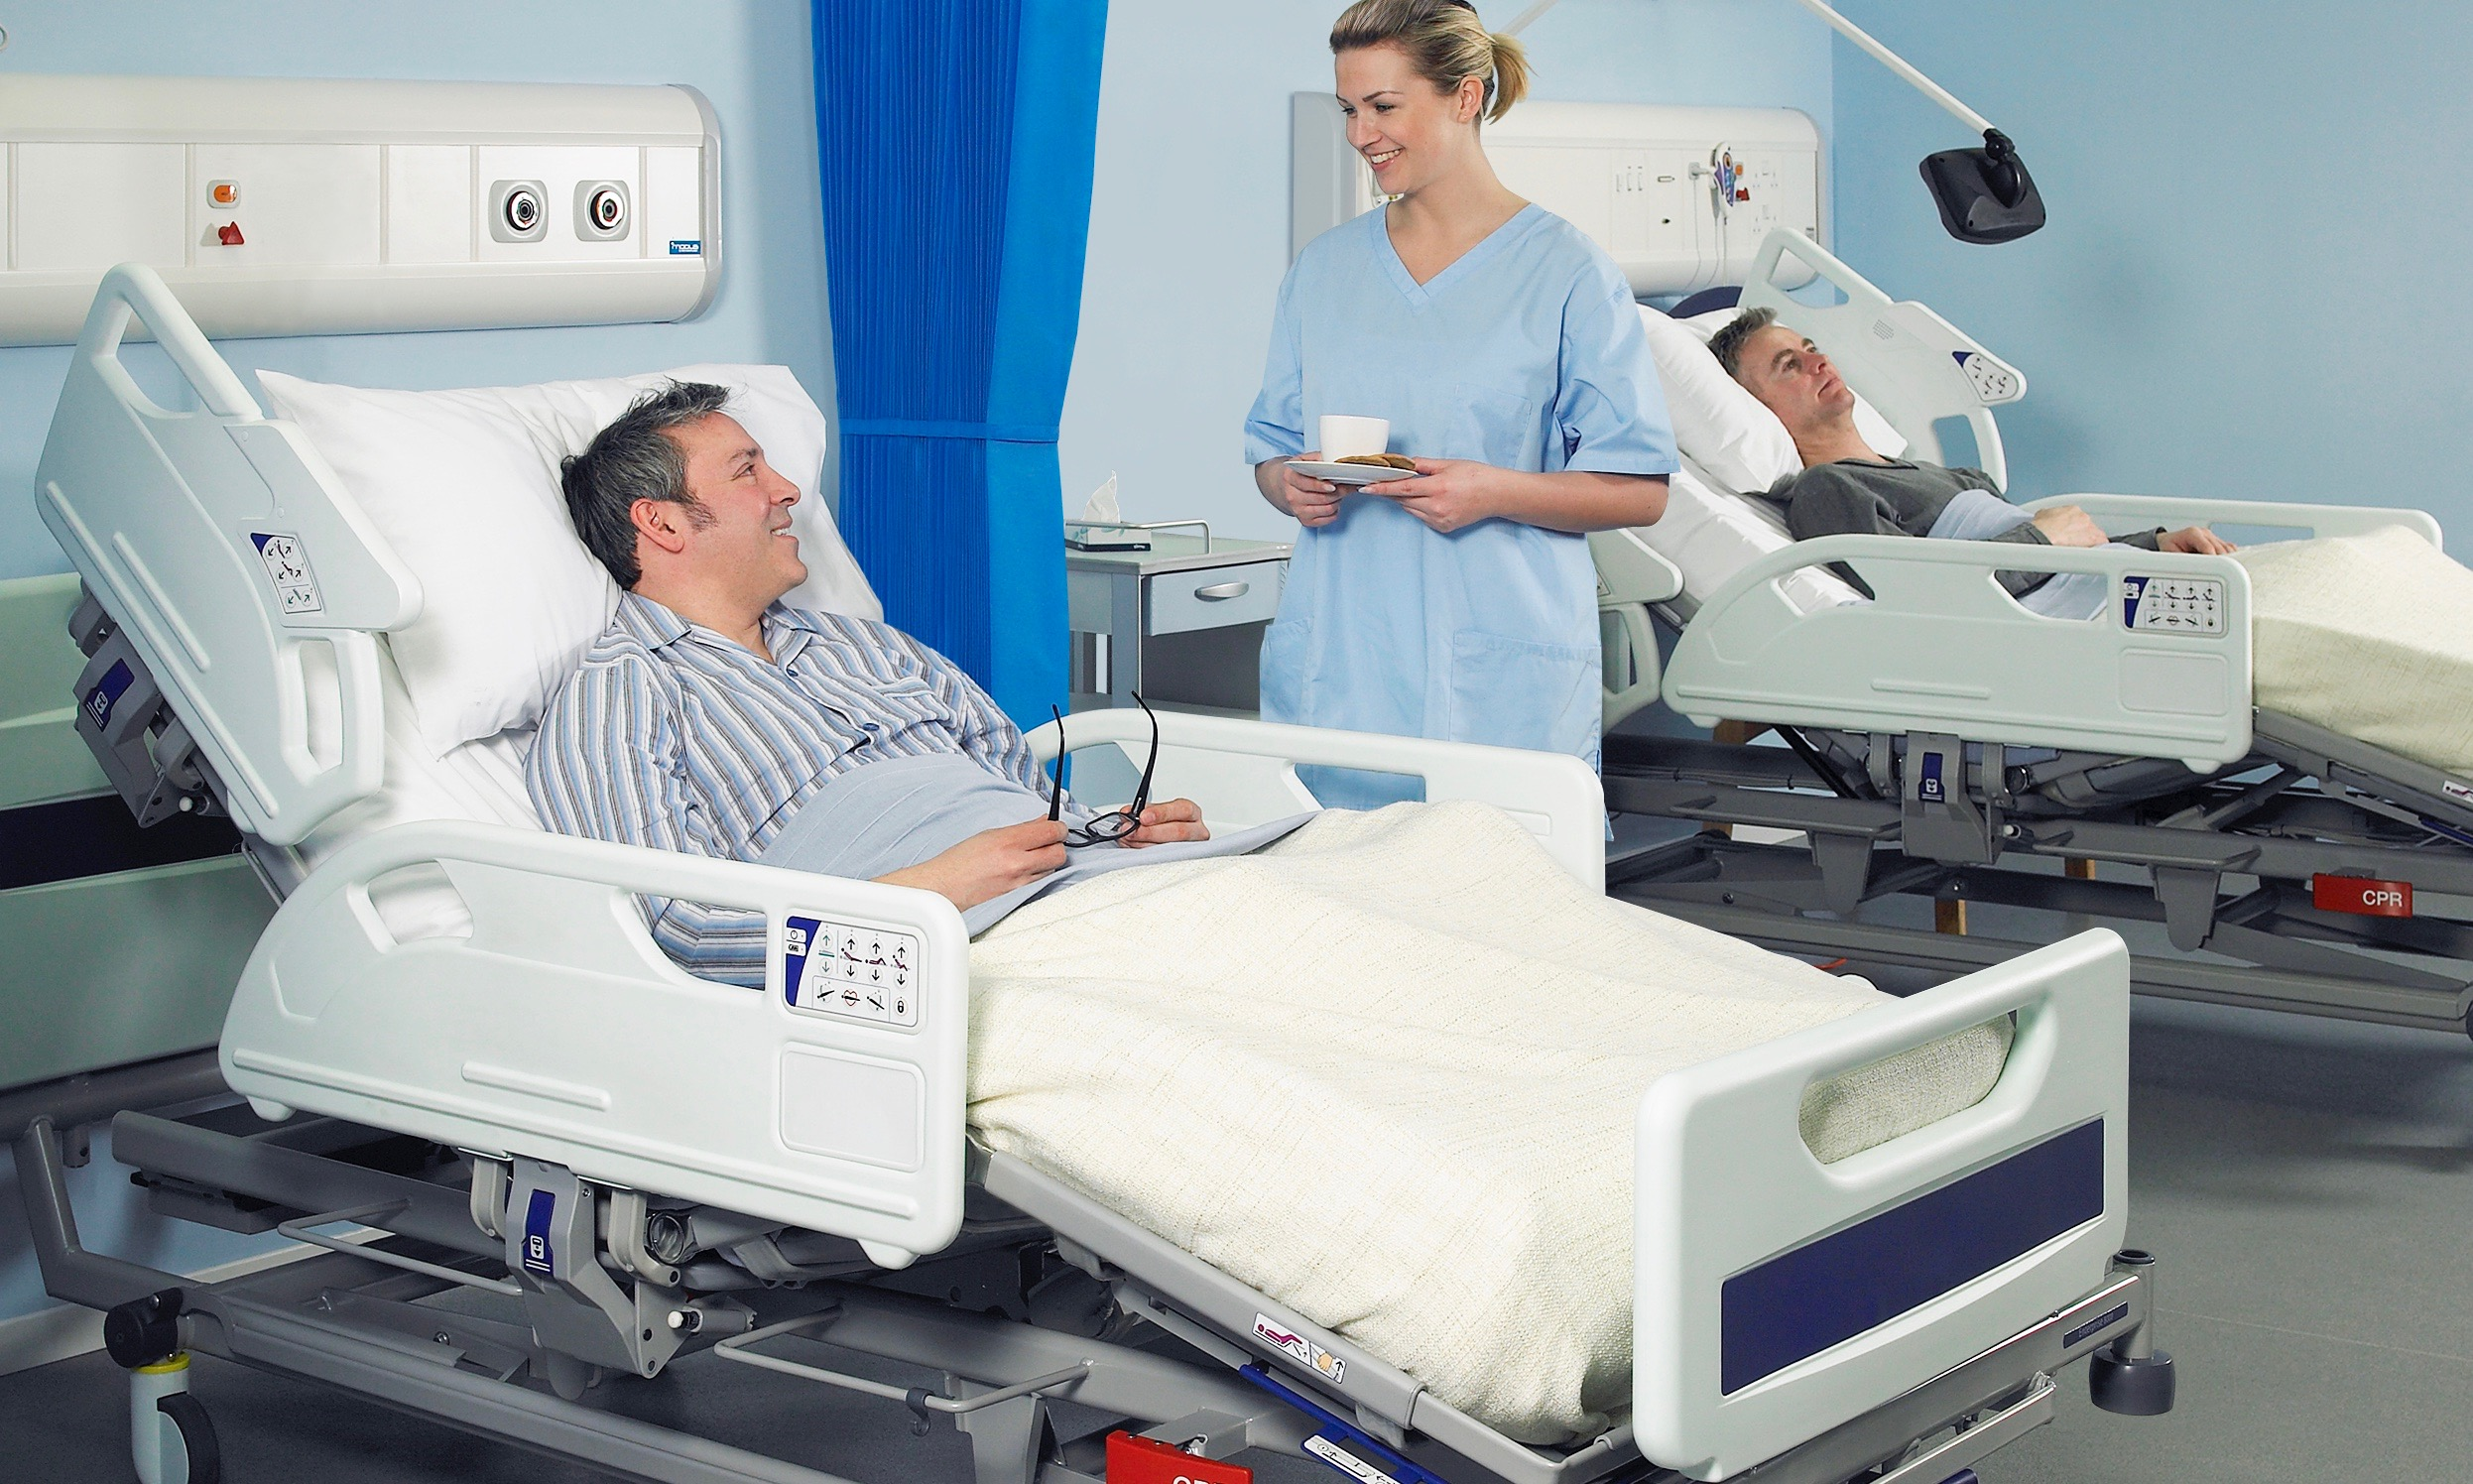 7 things to remember when choosing a medical / hospital bed